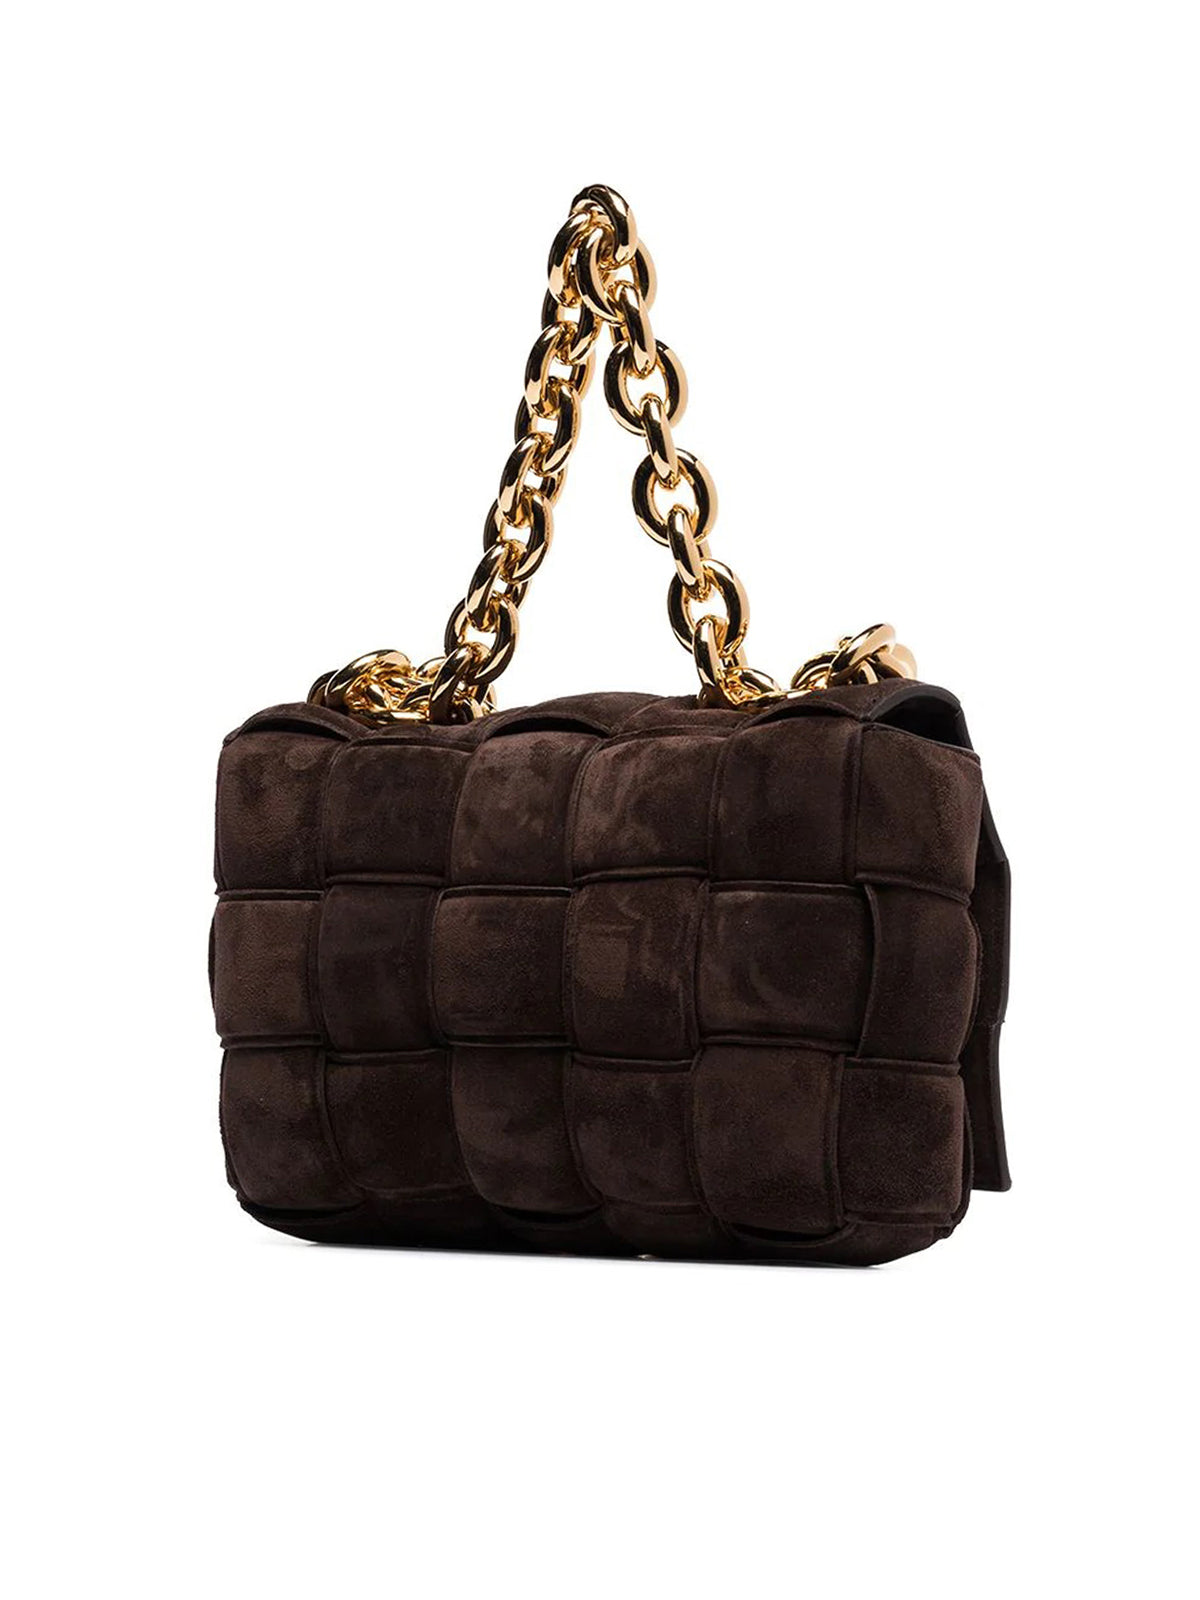 The Chain Cassette suede shoulder bag